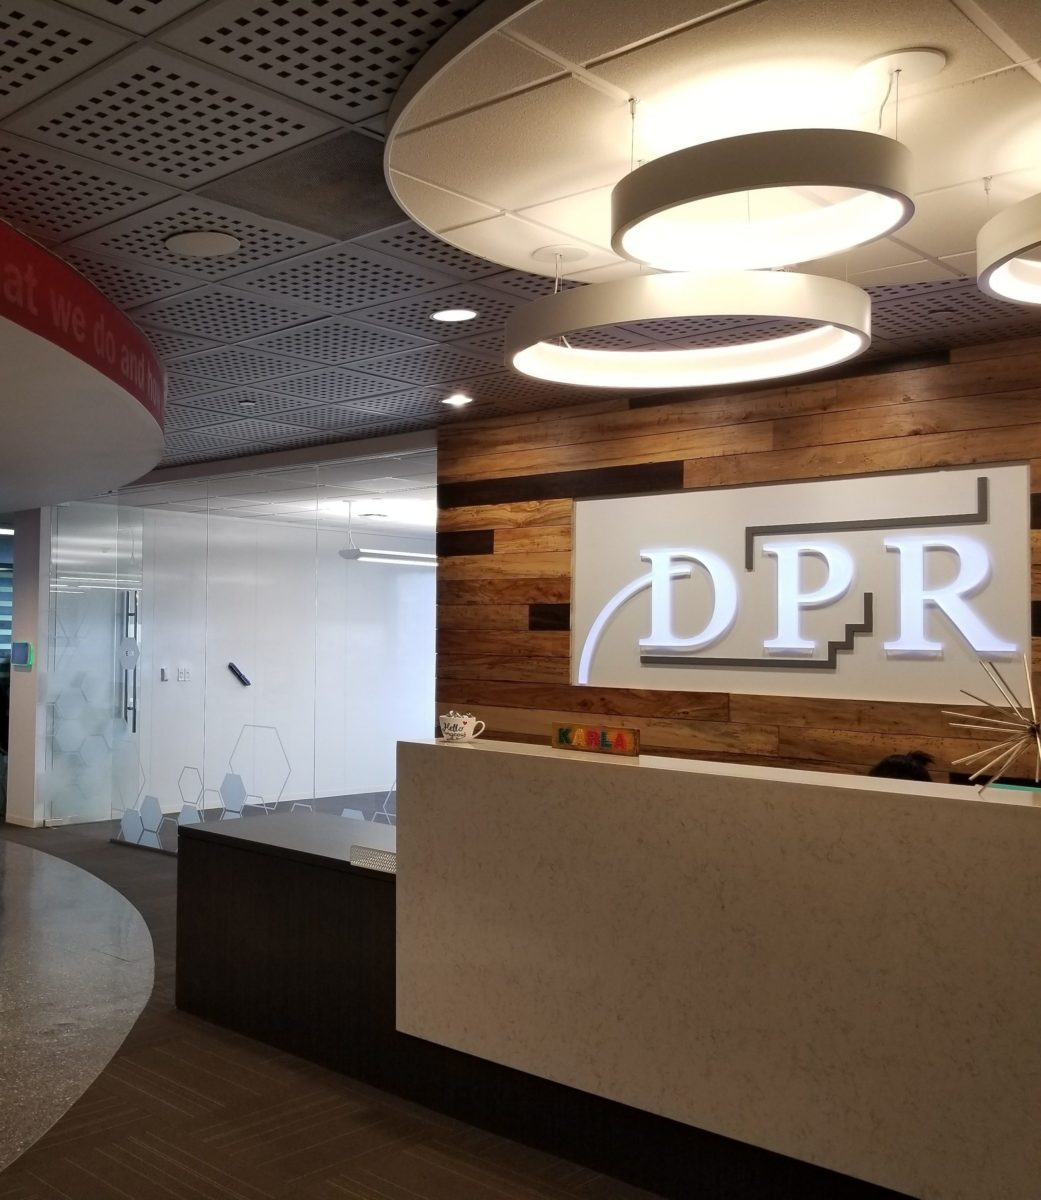 Lobby desk and sign at DPR Houston office.